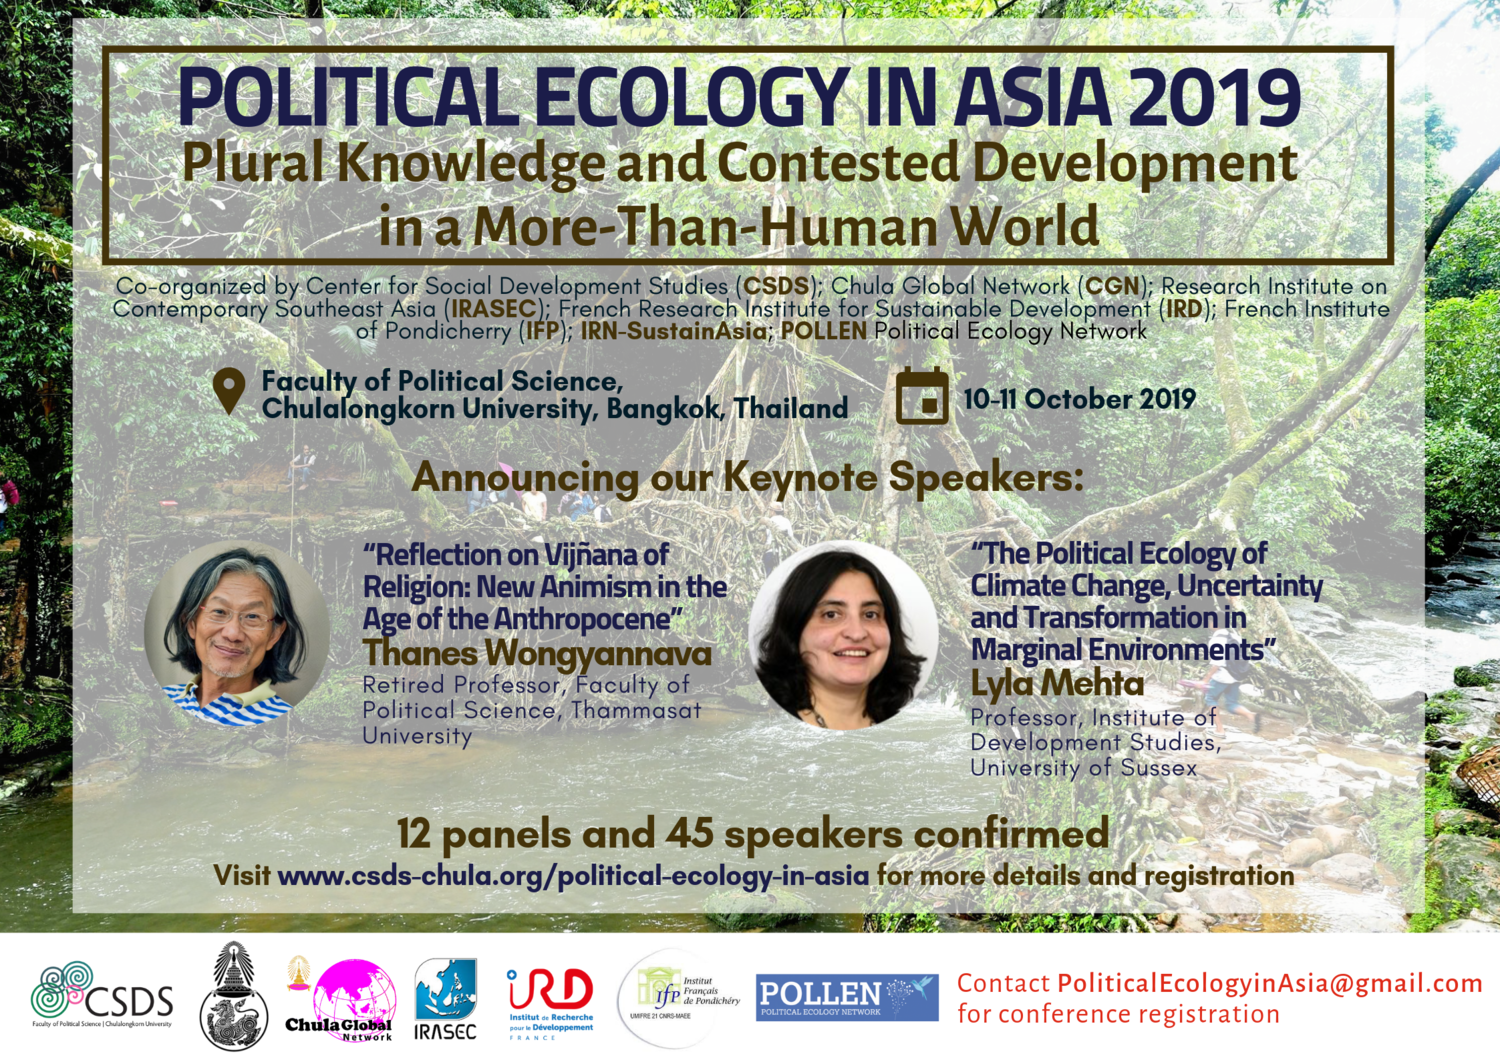 Political Ecology in Asia-02rev0912 (1).png